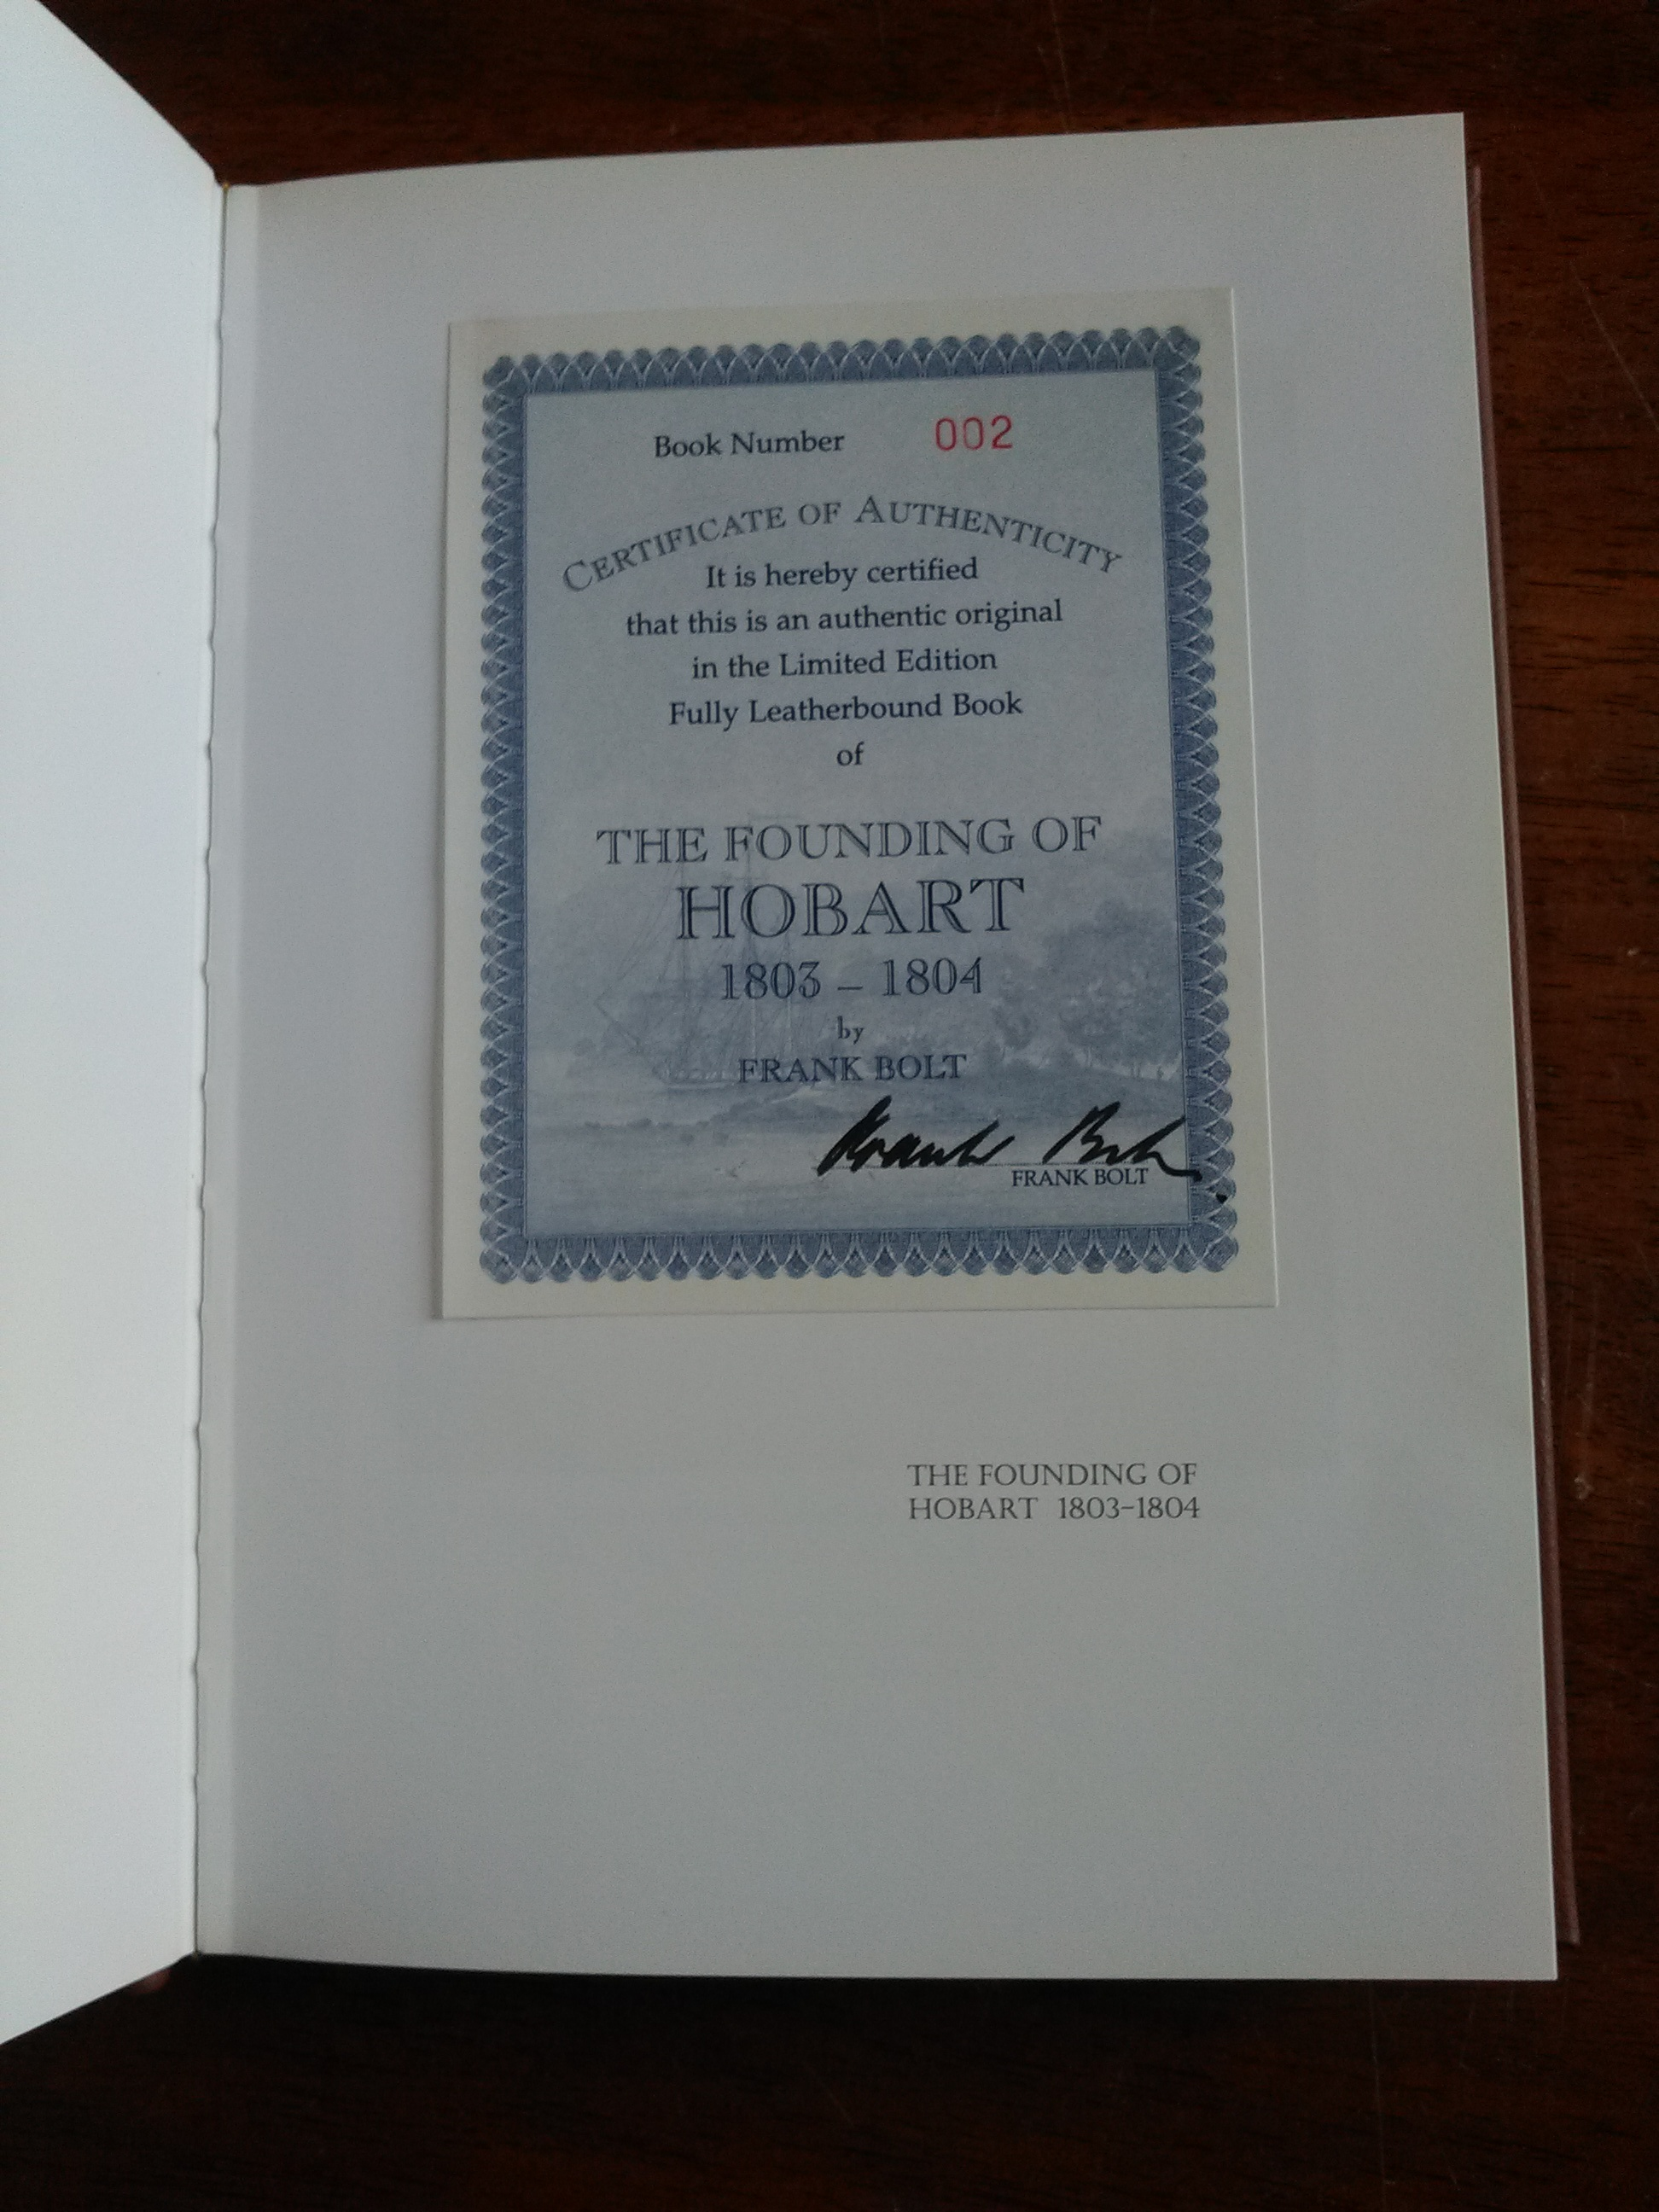 The Founding of Hobart - limited edition